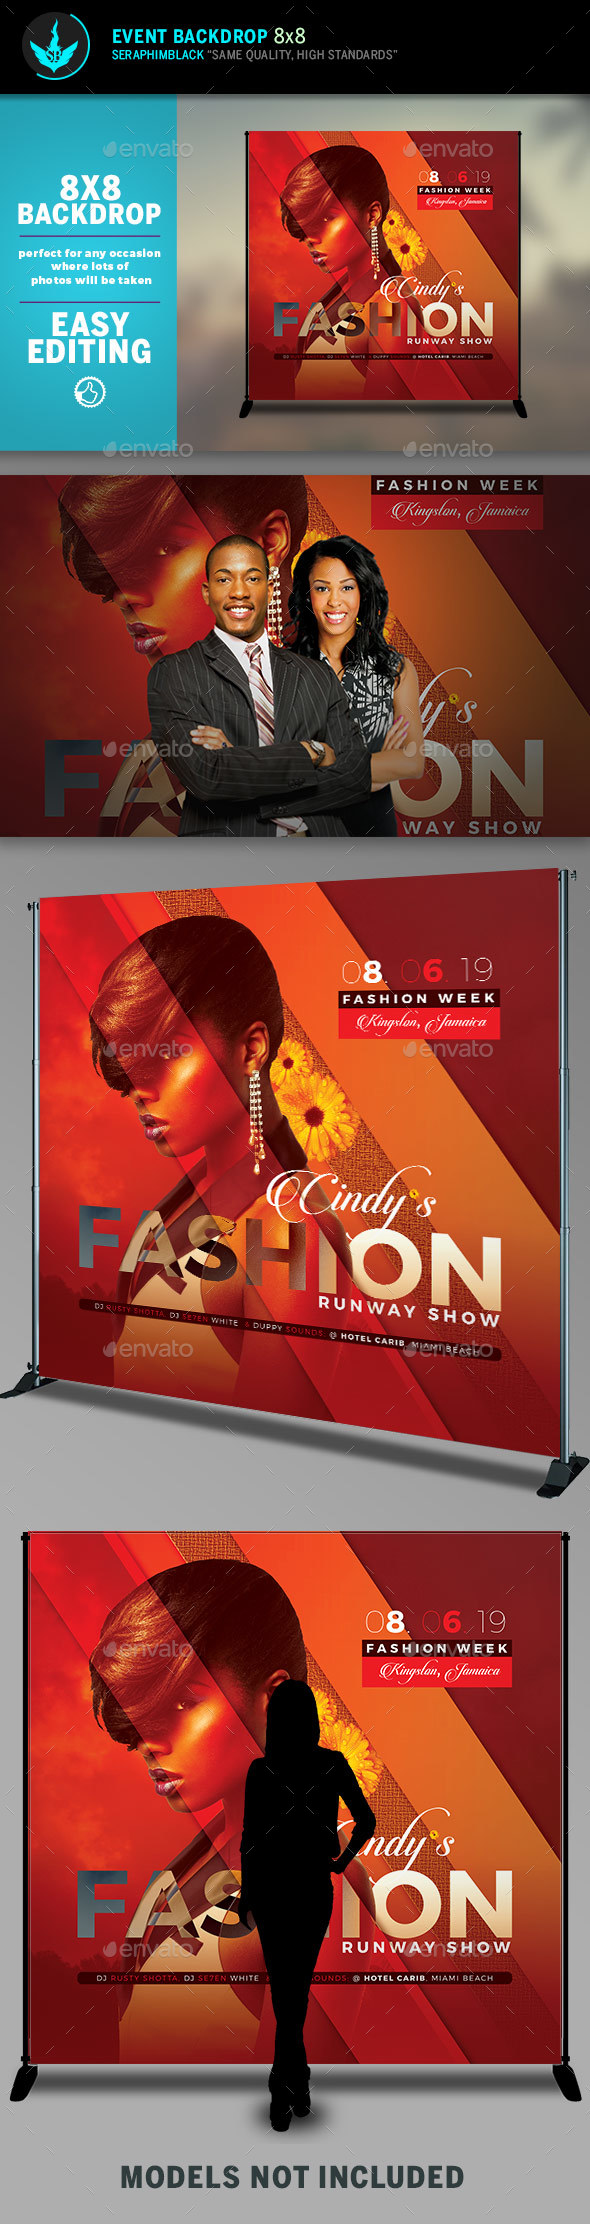 Fashion Conference 4 8x8 Event Backdrop Template - Signage Print Templates